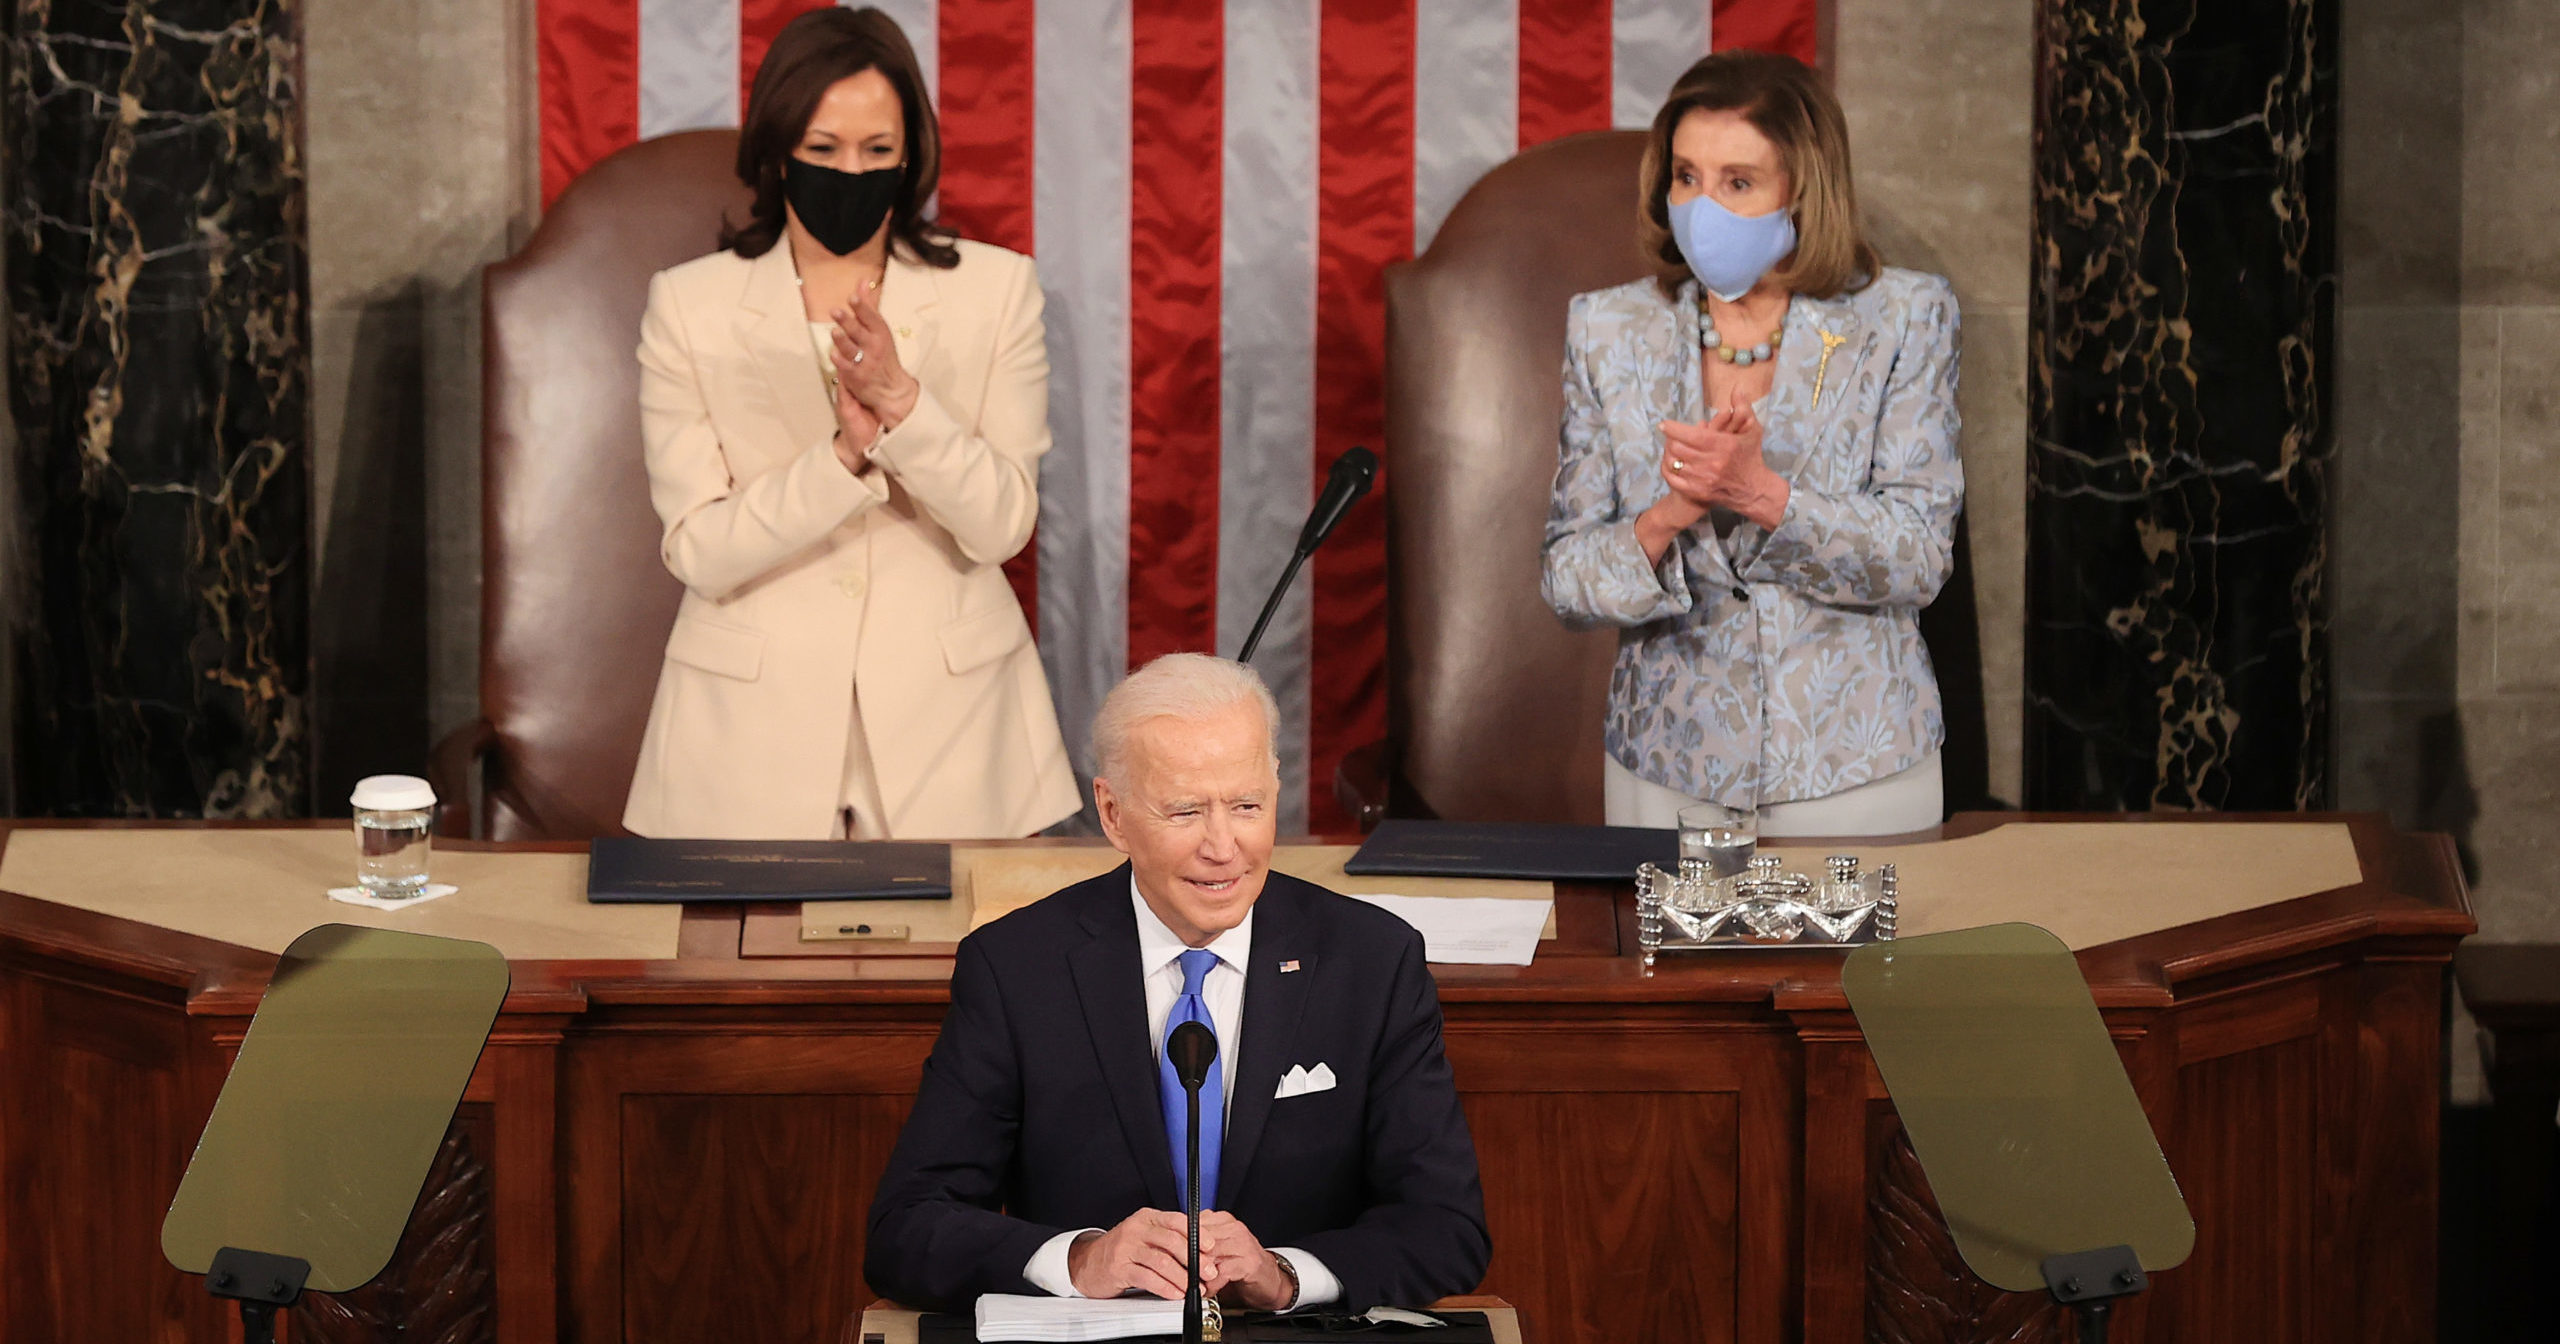 President Joe Biden addresses a joint session of Congress as Vice President Kamala Harris, left, and Democratic Speaker of the House Nancy Pelosi, right, look on in the House chamber of the U.S. Capitol on Wednesday in Washington, D.C.